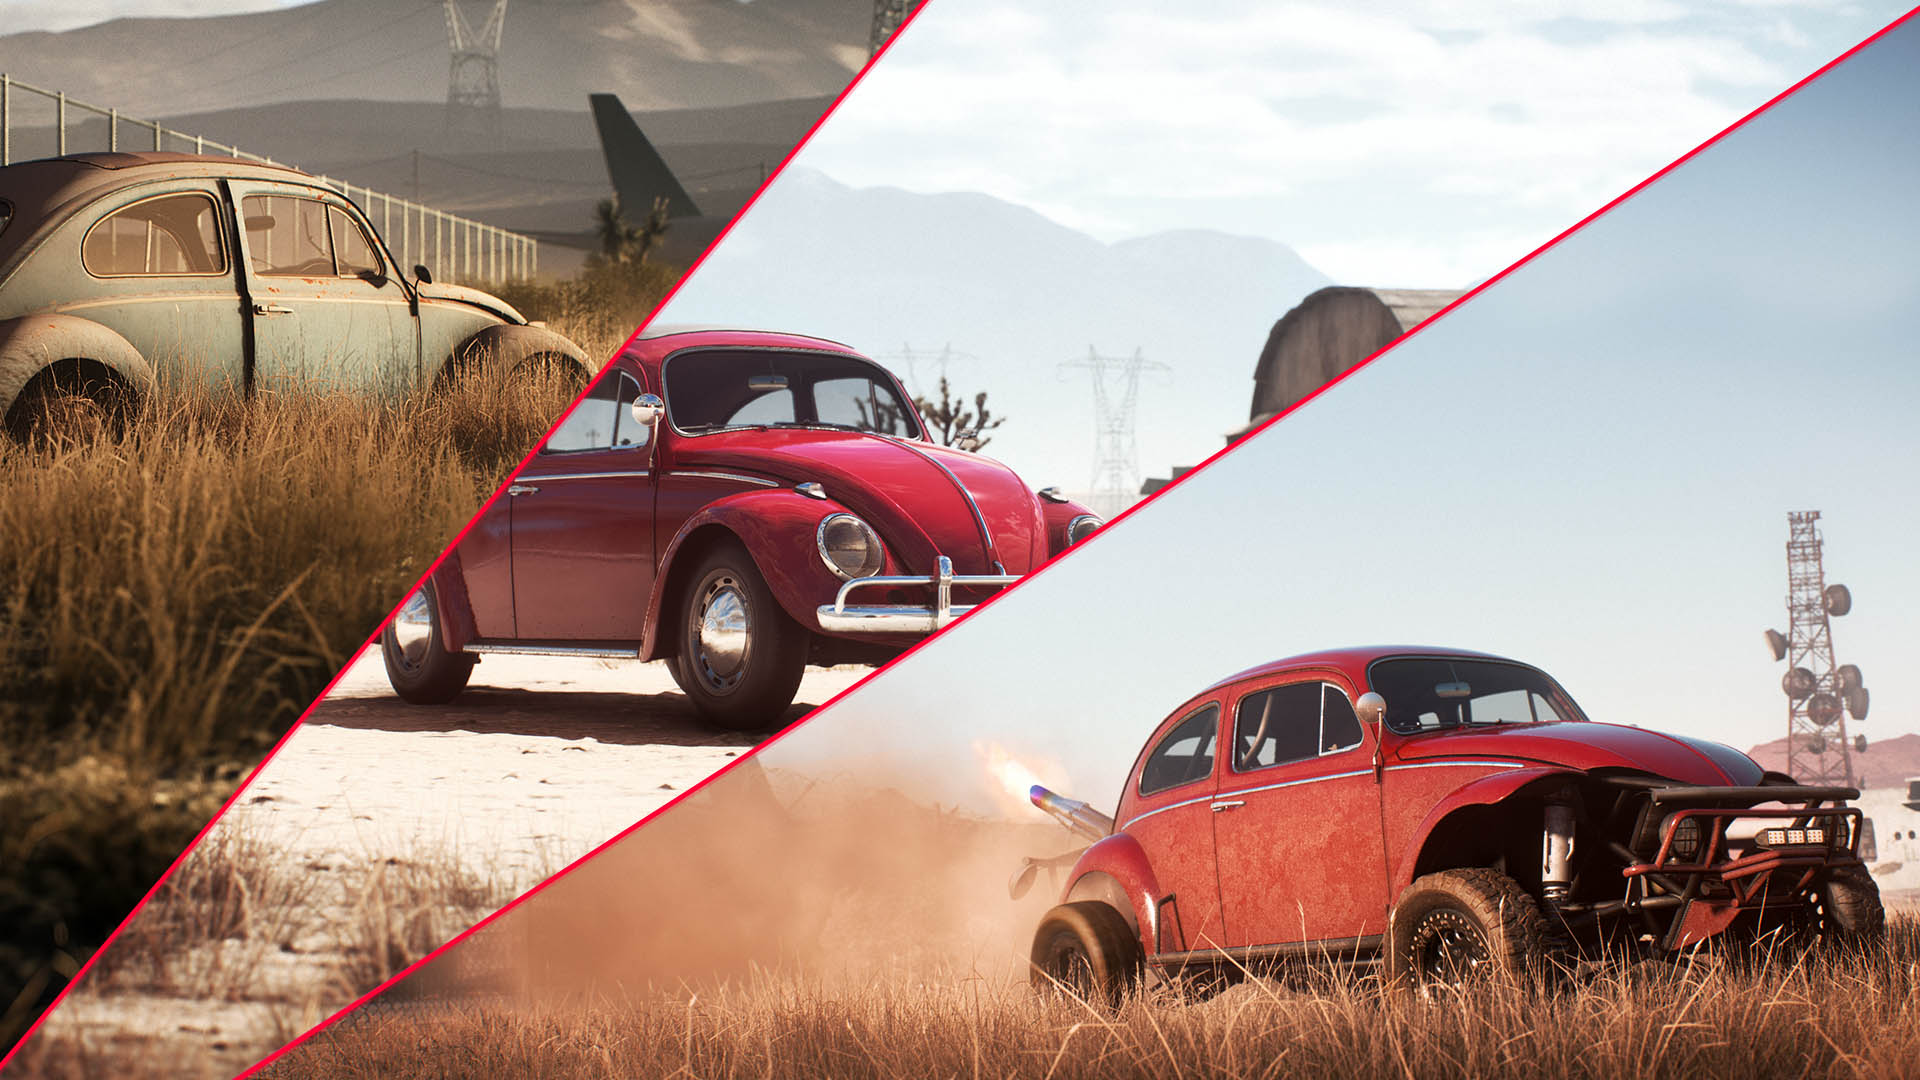 need for speed payback ps4 cheats 2020